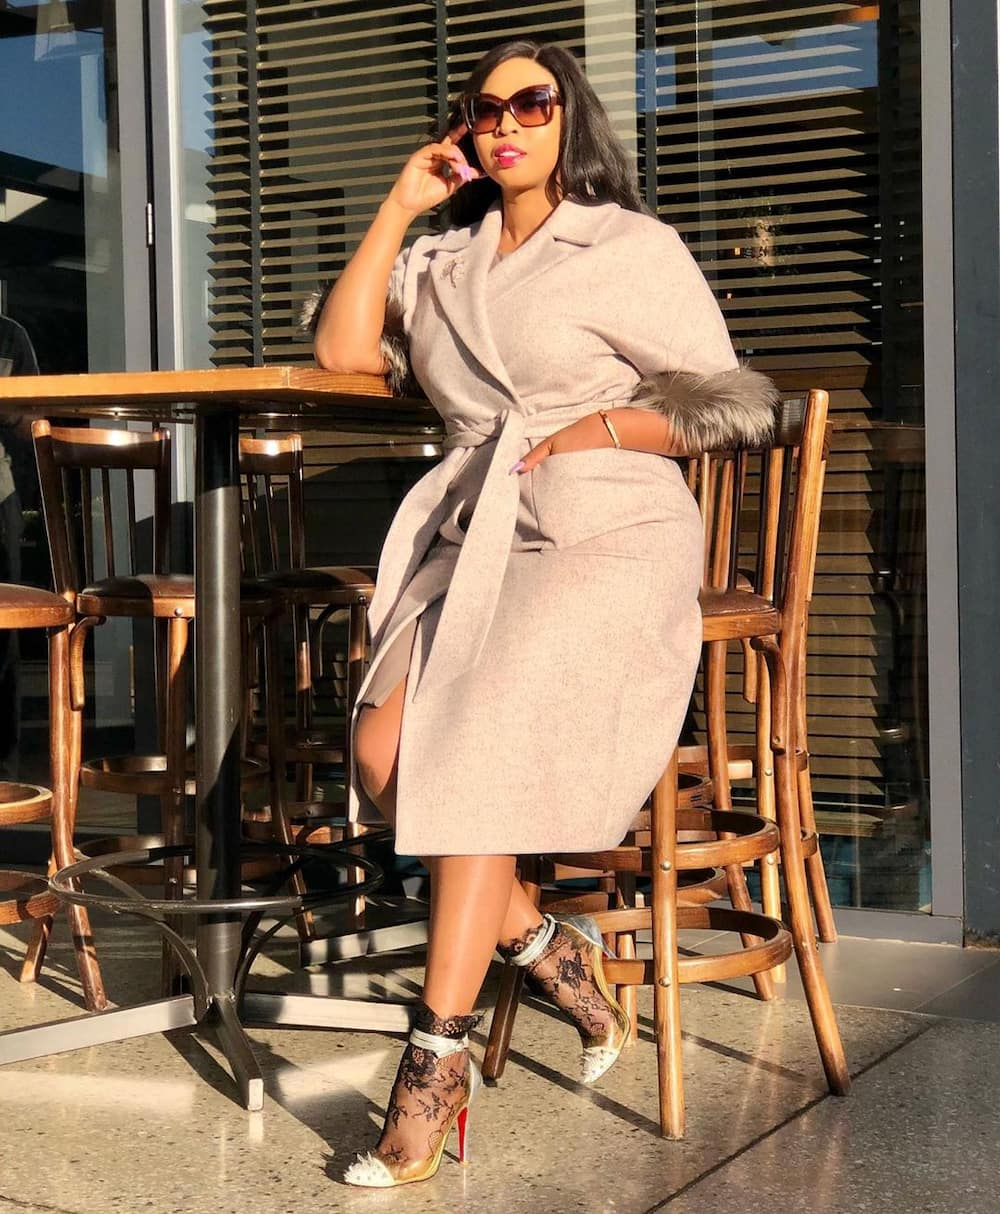 Ayanda Ncwane age, spouse, wedding, book, pictures and Instagram